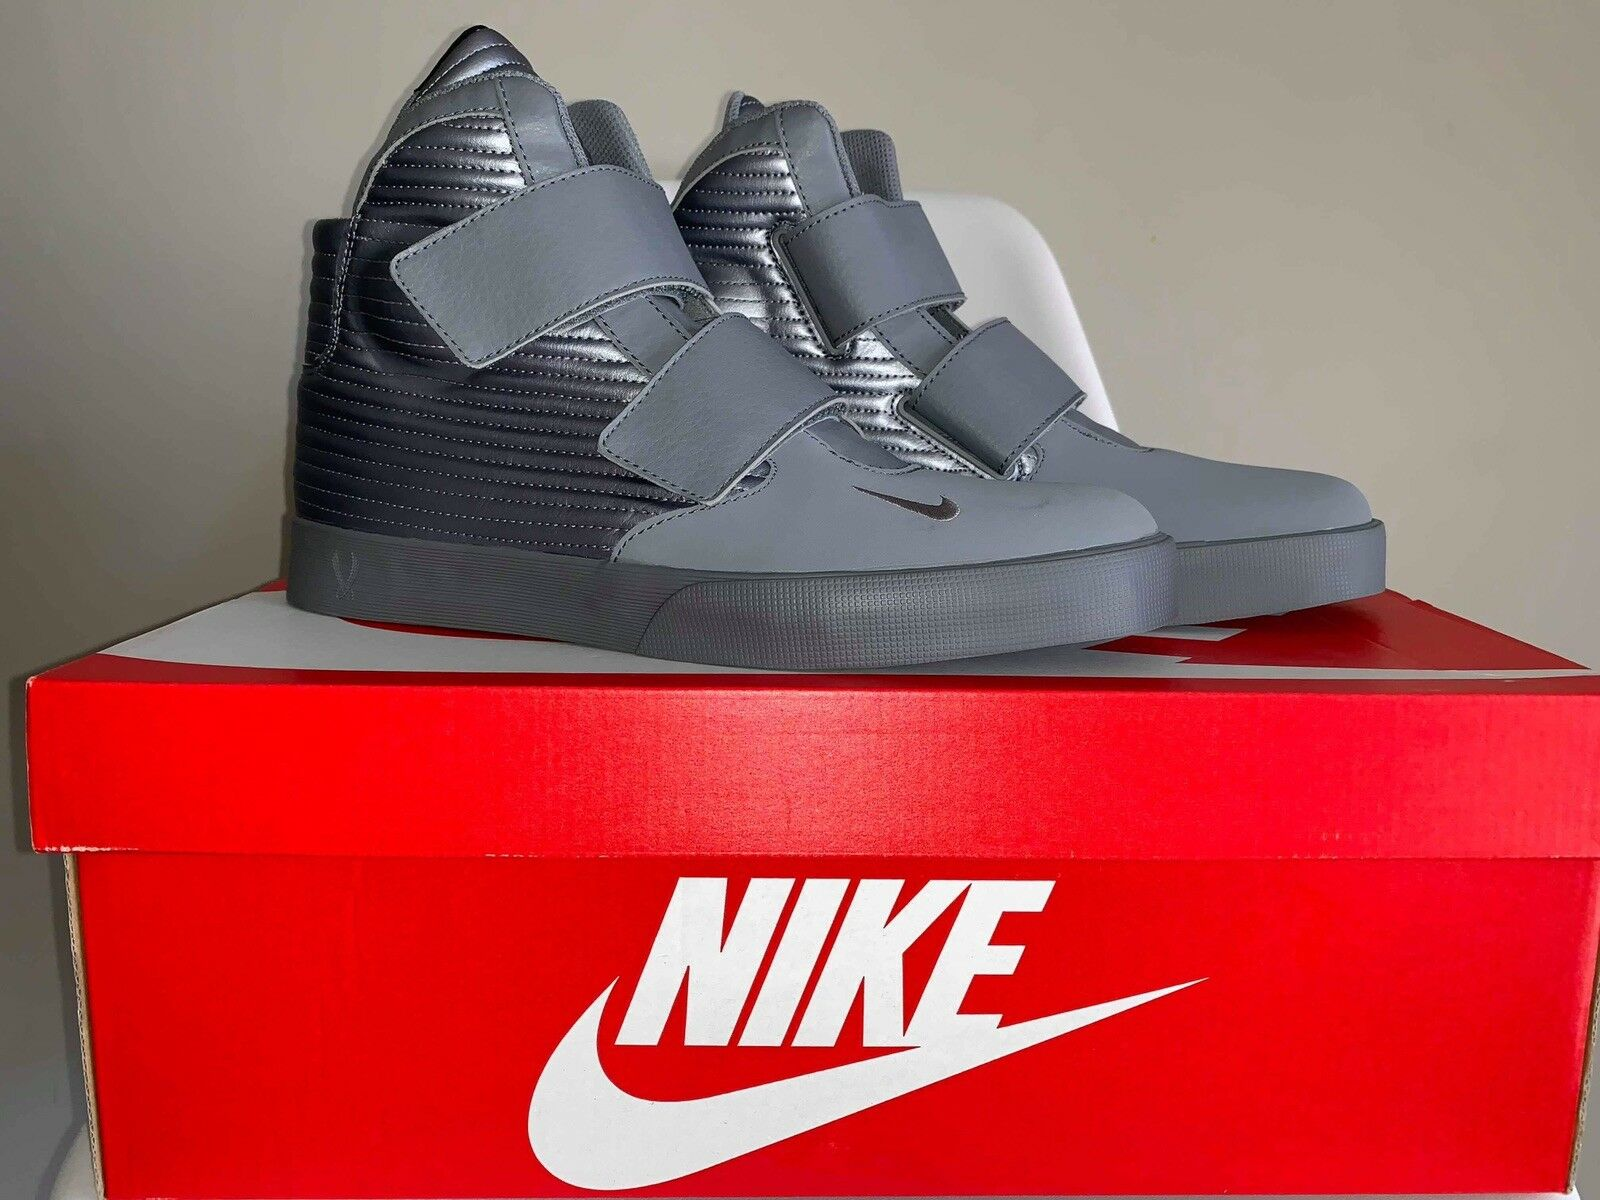 NEW With Box NIKE Flystepper 2K3 Mens Hi Top Trainers